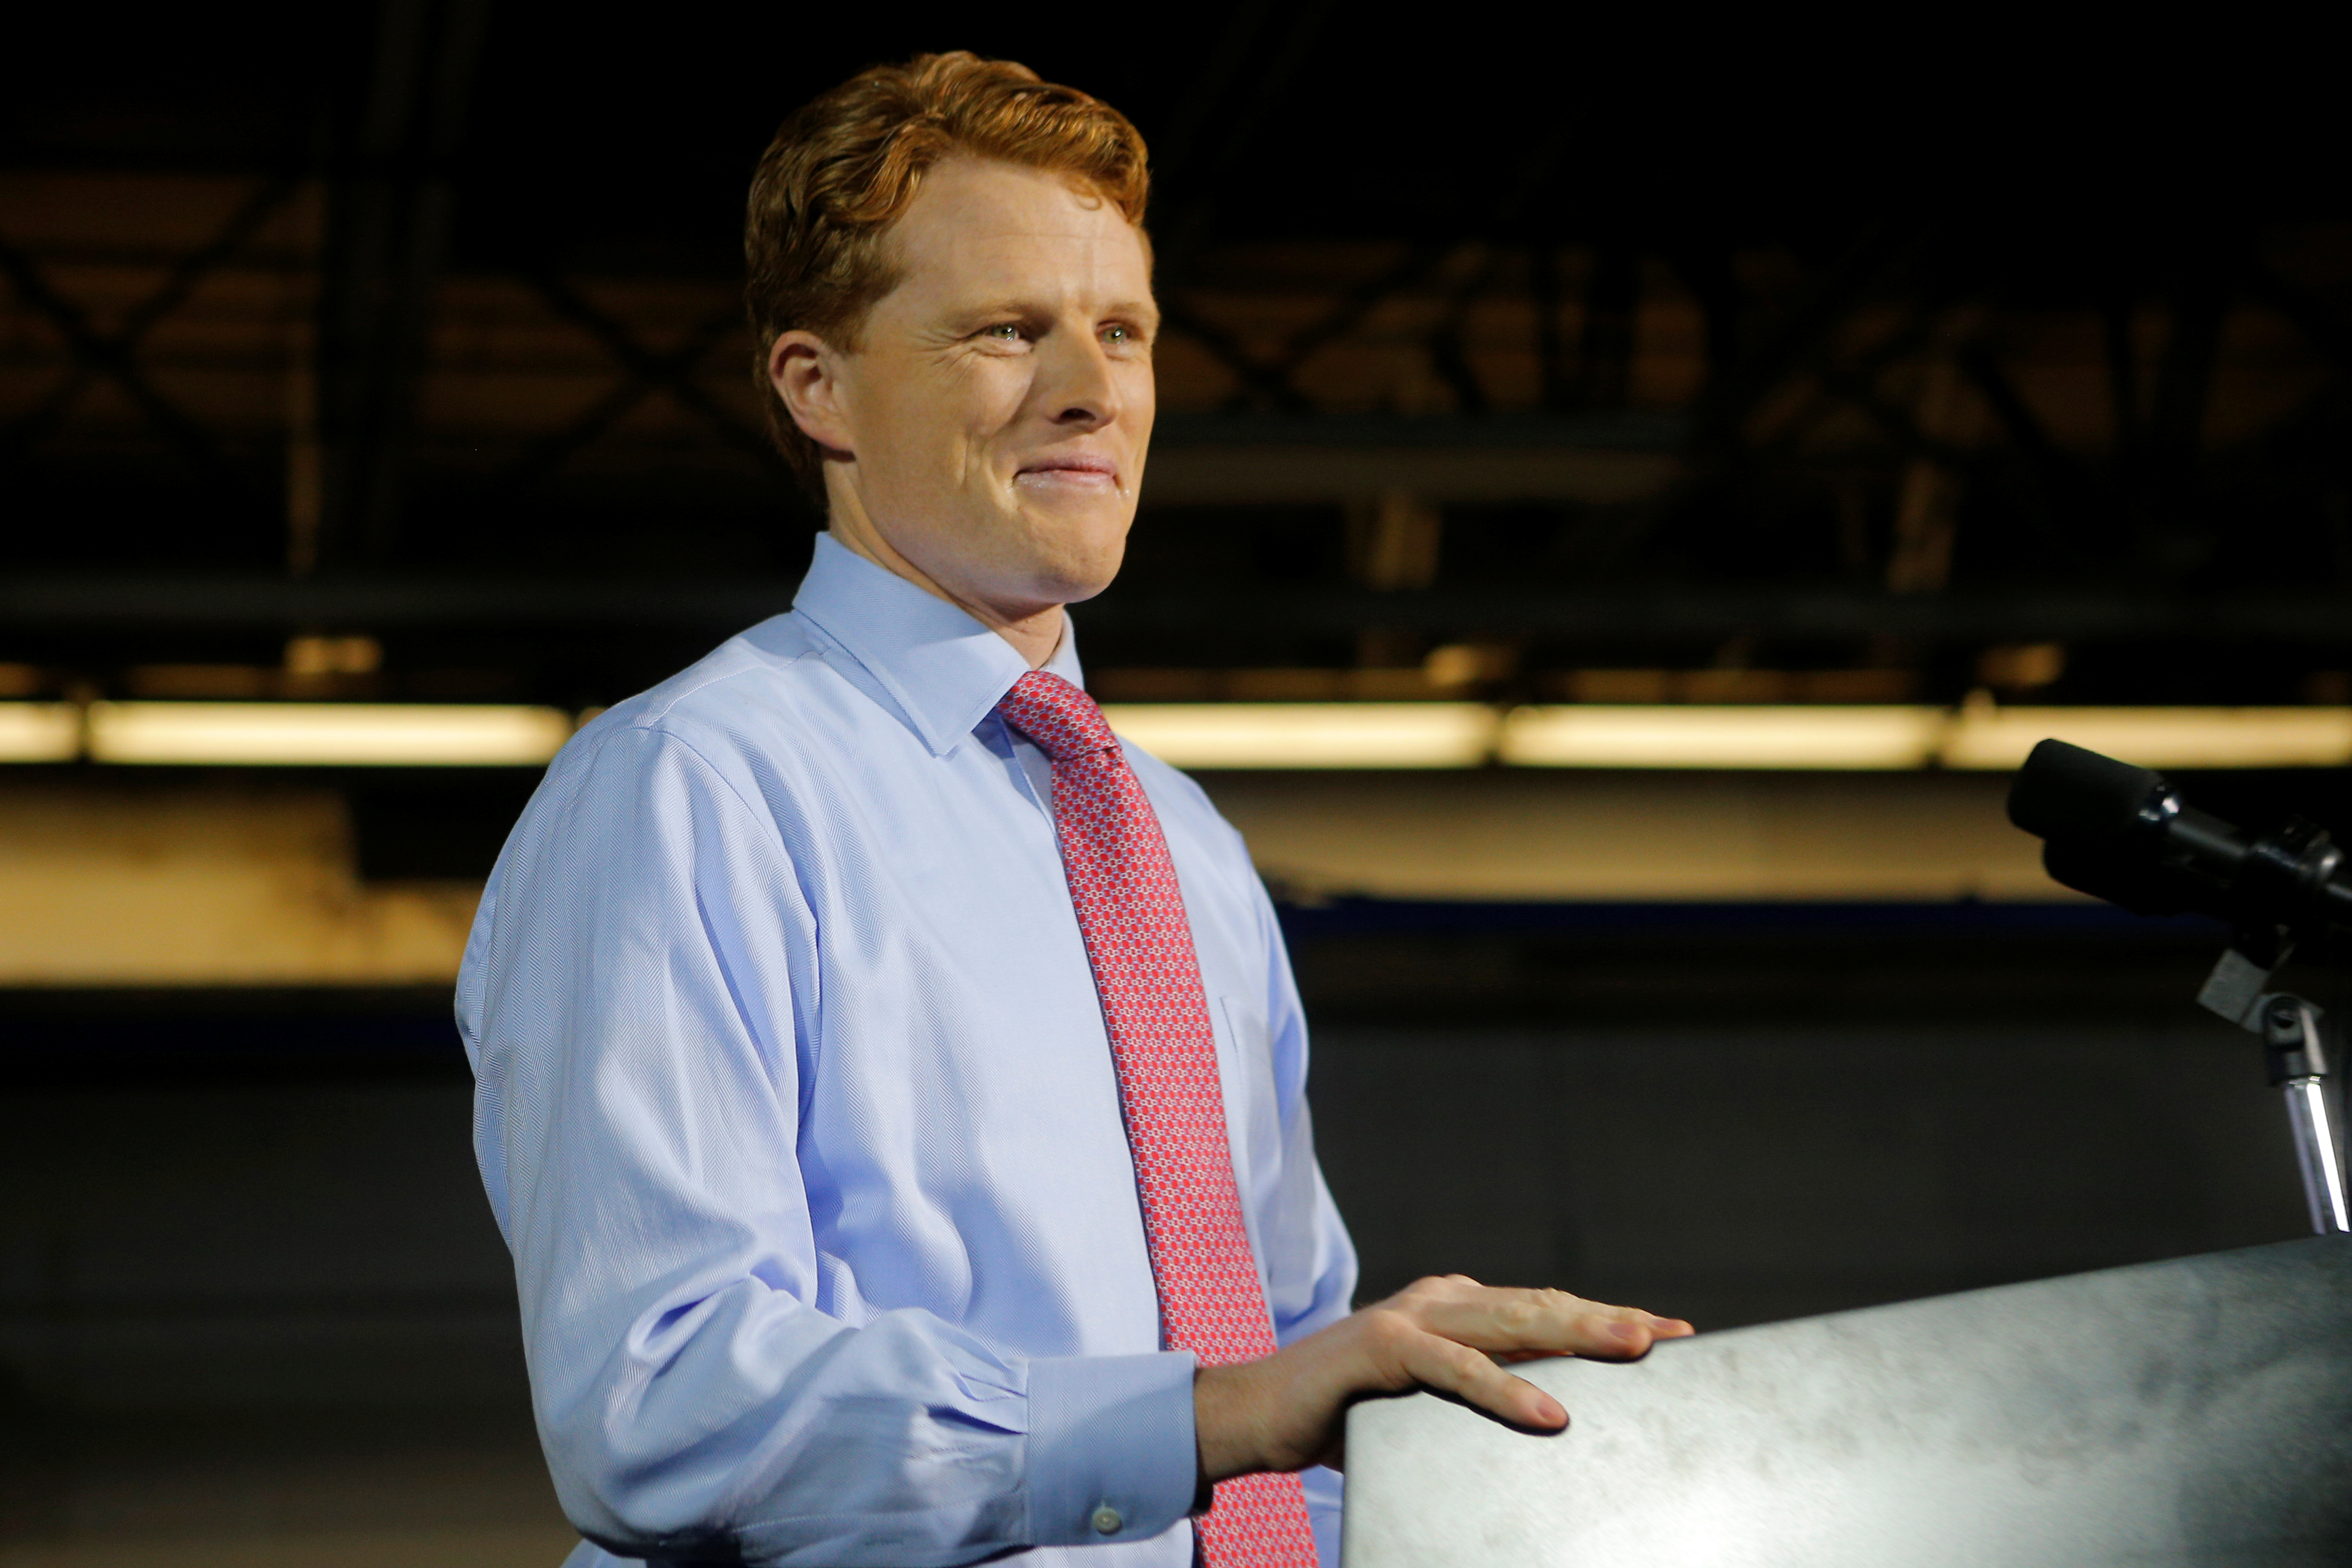 U.S. Rep. Joe Kennedy delivers the Democratic rebuttal to U.S. President Donald Trump's State of the Union address in Fall River, Massachusetts, Jan. 30, 2018.